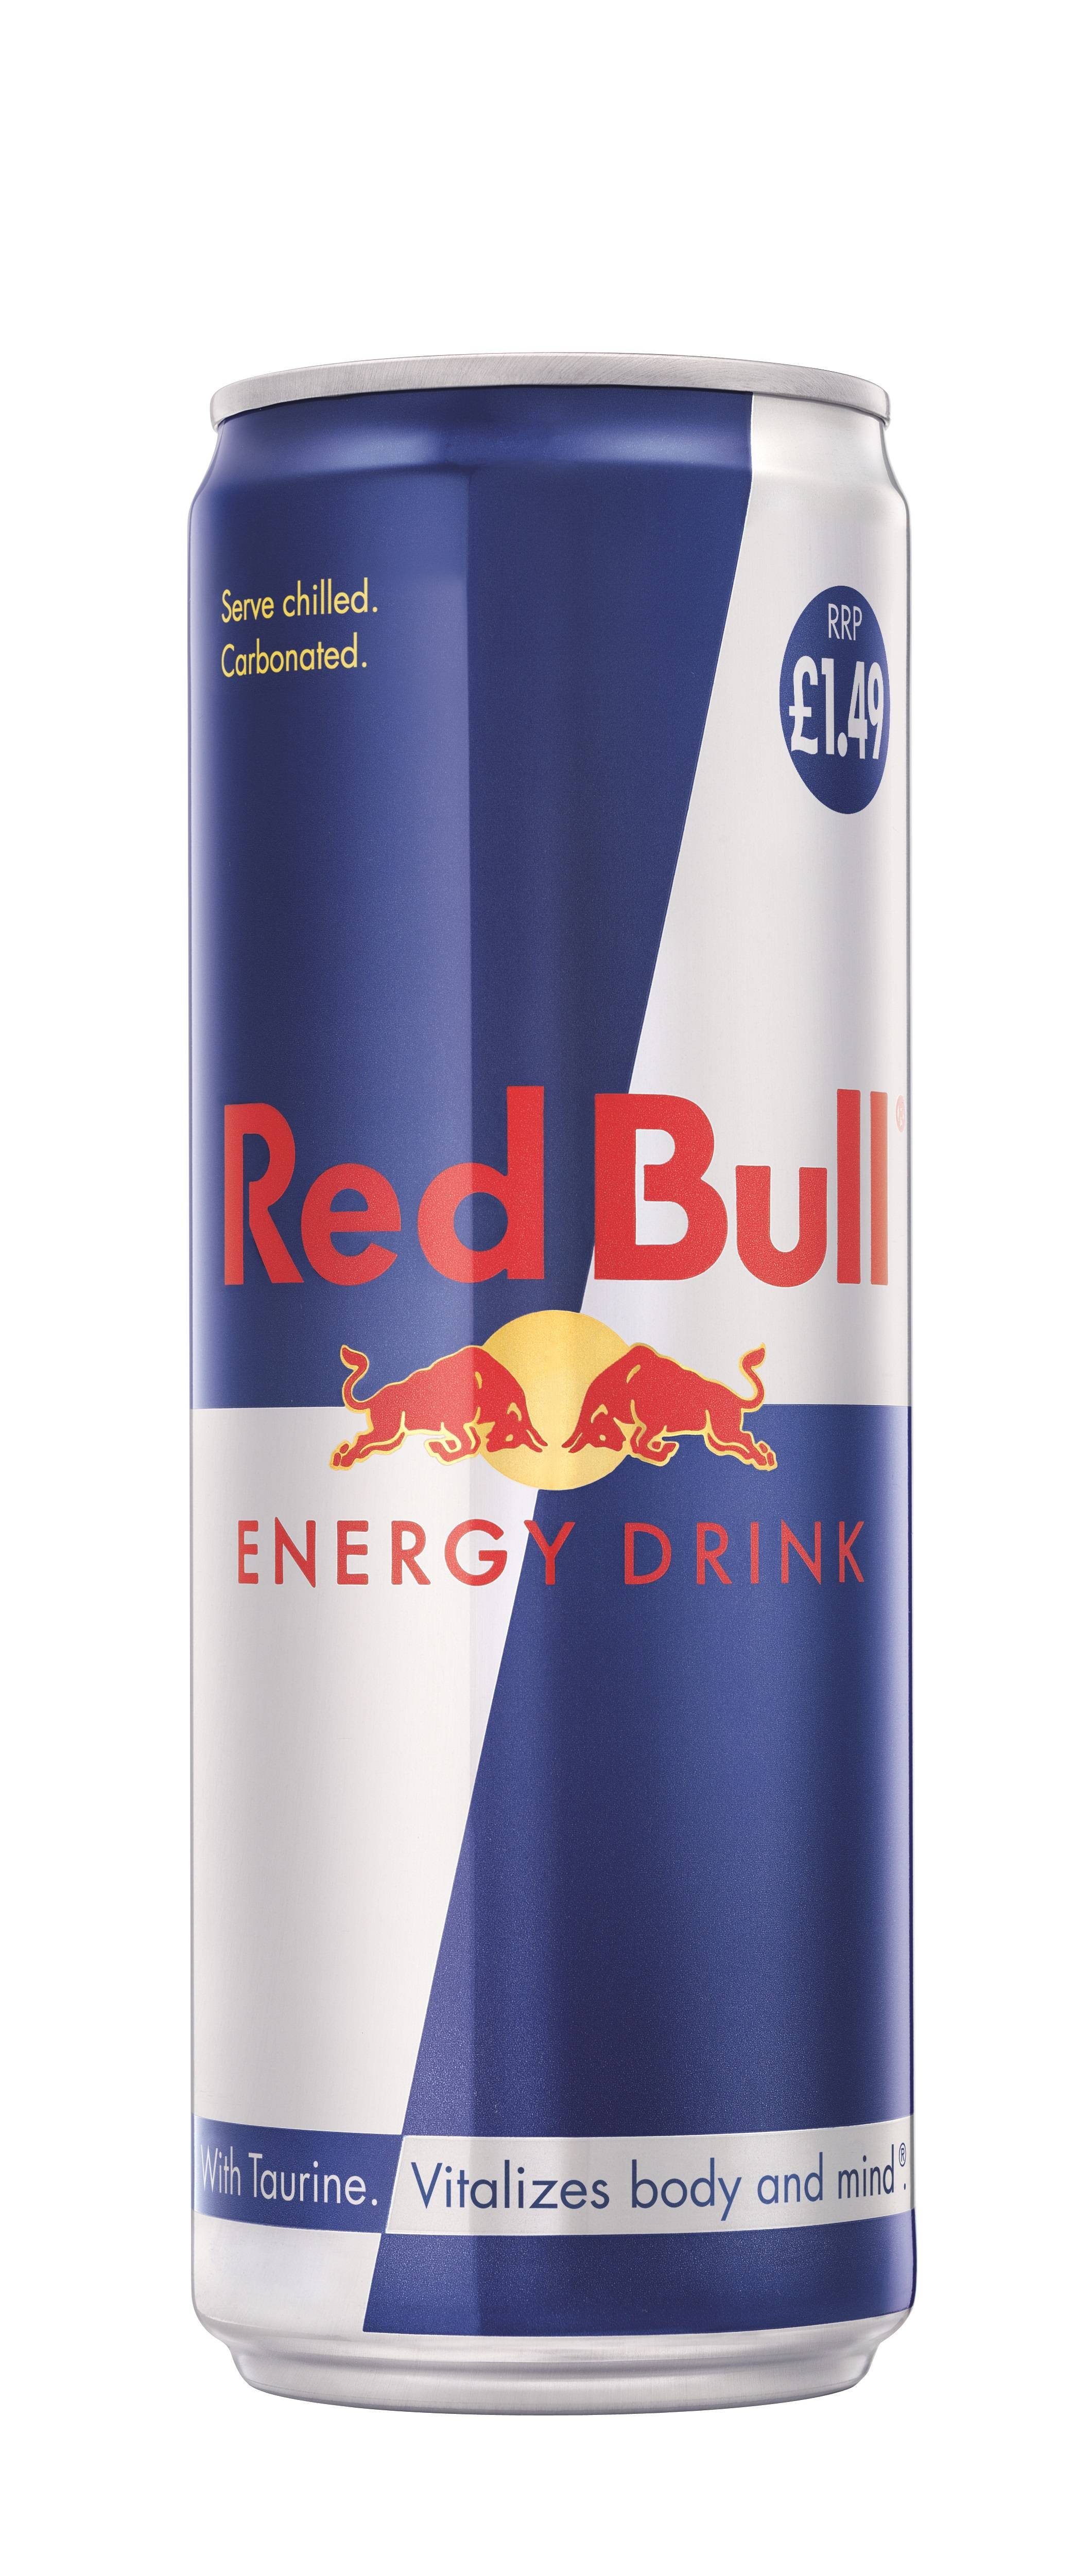 Red Bull launches £1.49 PMPs